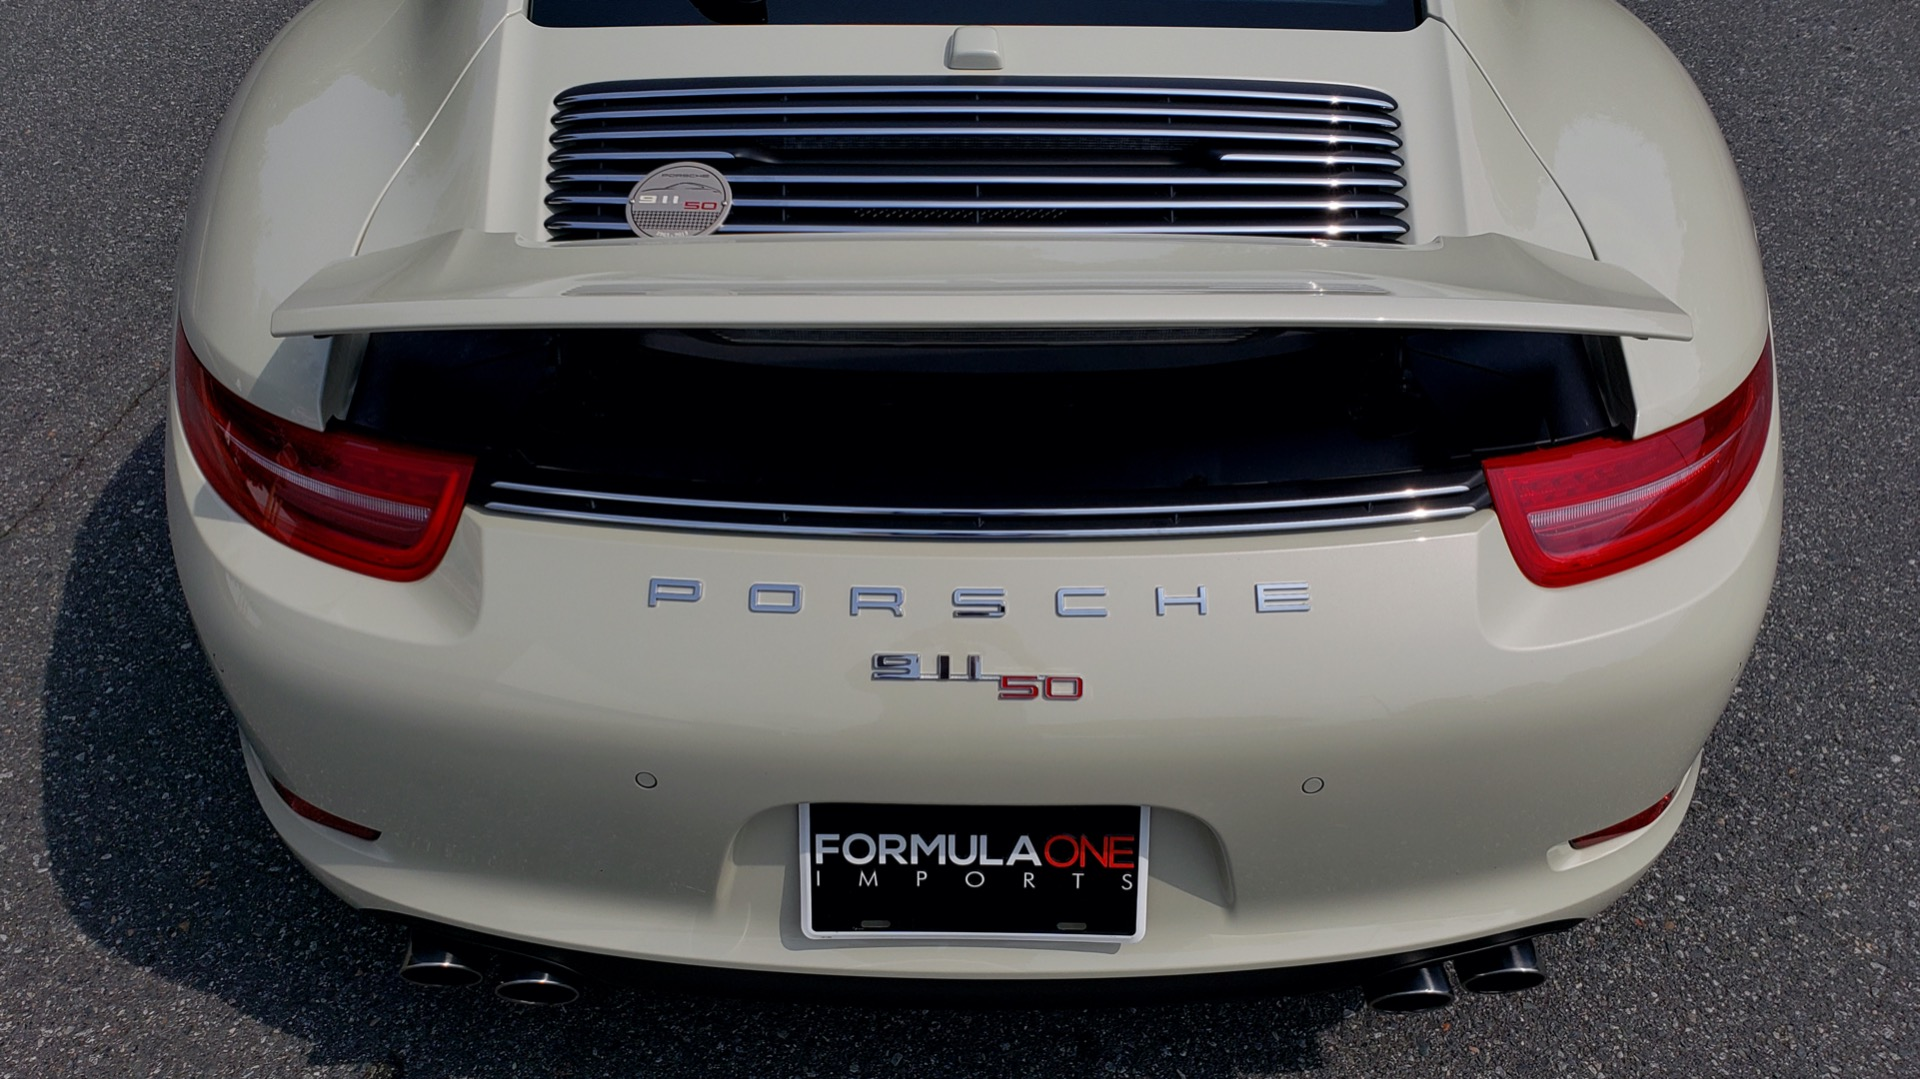 Used 2014 Porsche 911 50TH ANNIVERSARY EDITION / NAV / BOSE / 7-SPEED MANUAL for sale Sold at Formula Imports in Charlotte NC 28227 25